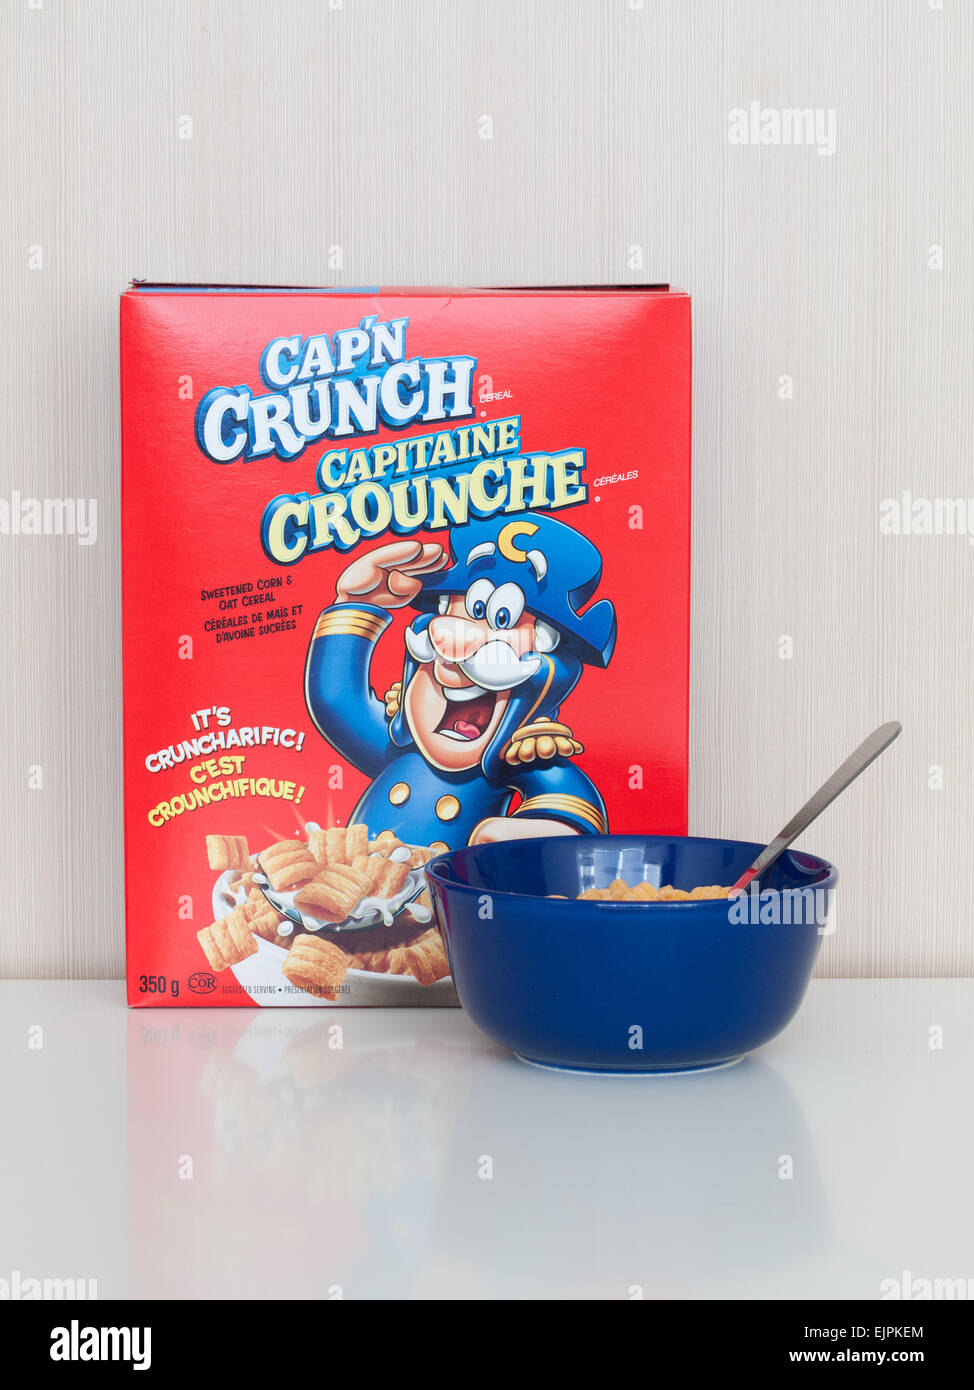 What is Cap'n Crunch's full name?